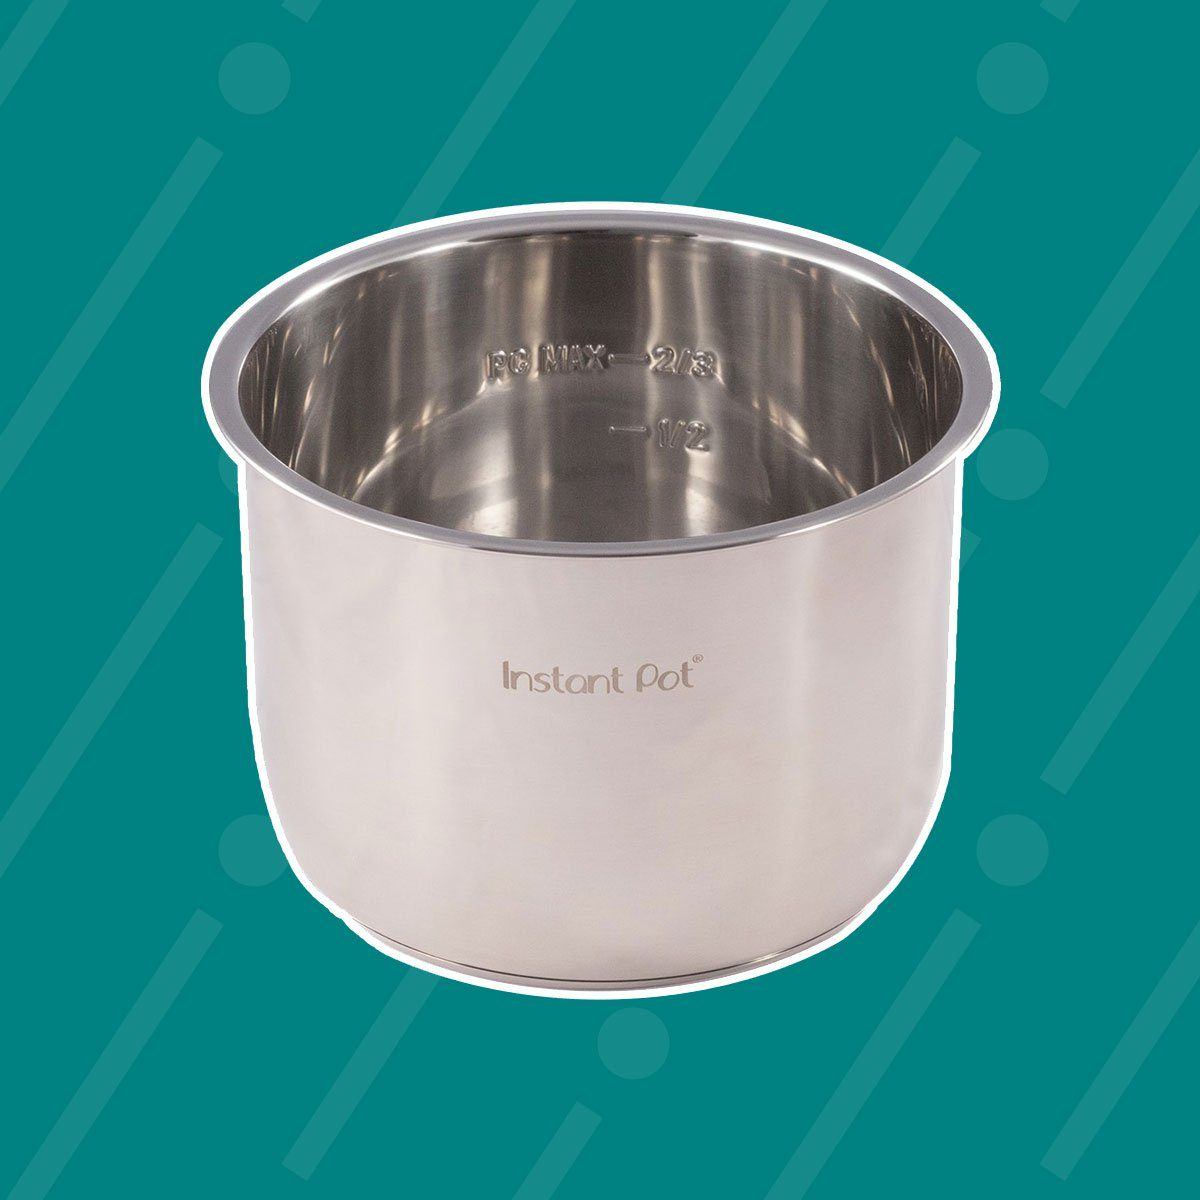 Genuine Instant Pot Stainless Steel Inner Cooking Pot